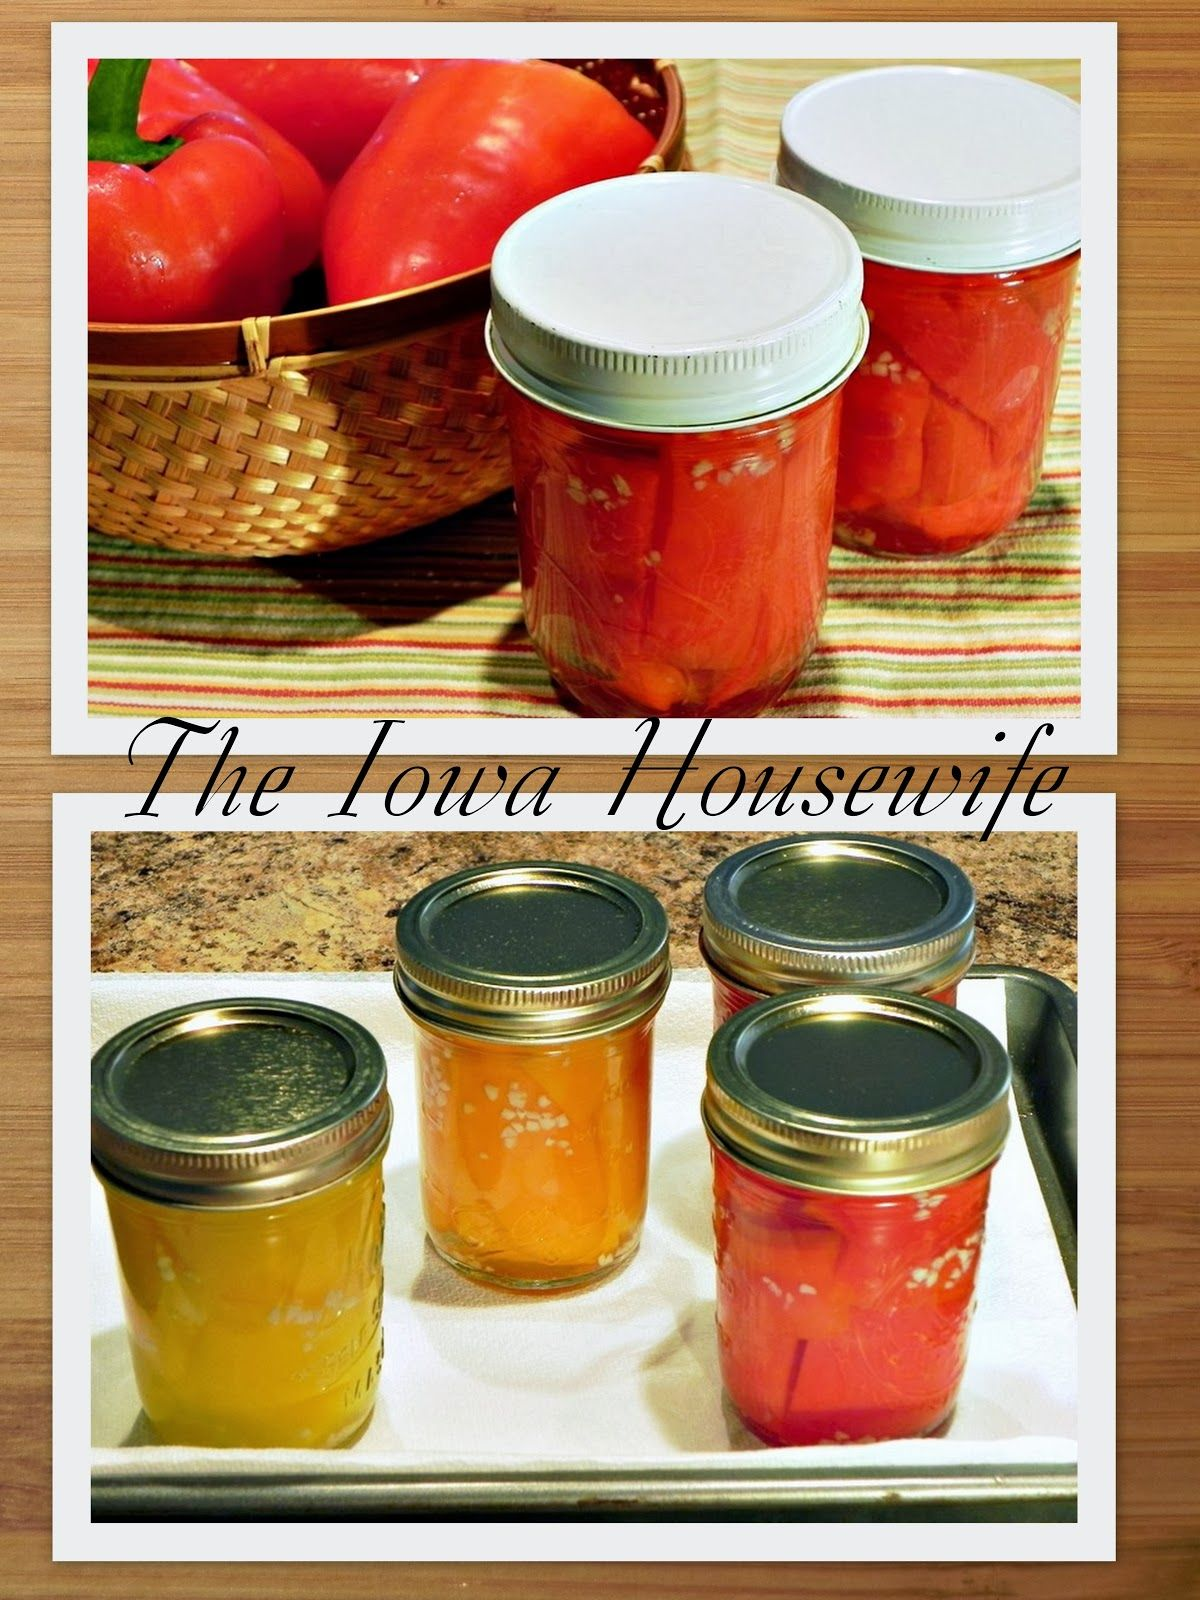 The Iowa Housewife: Pickles and Relishes